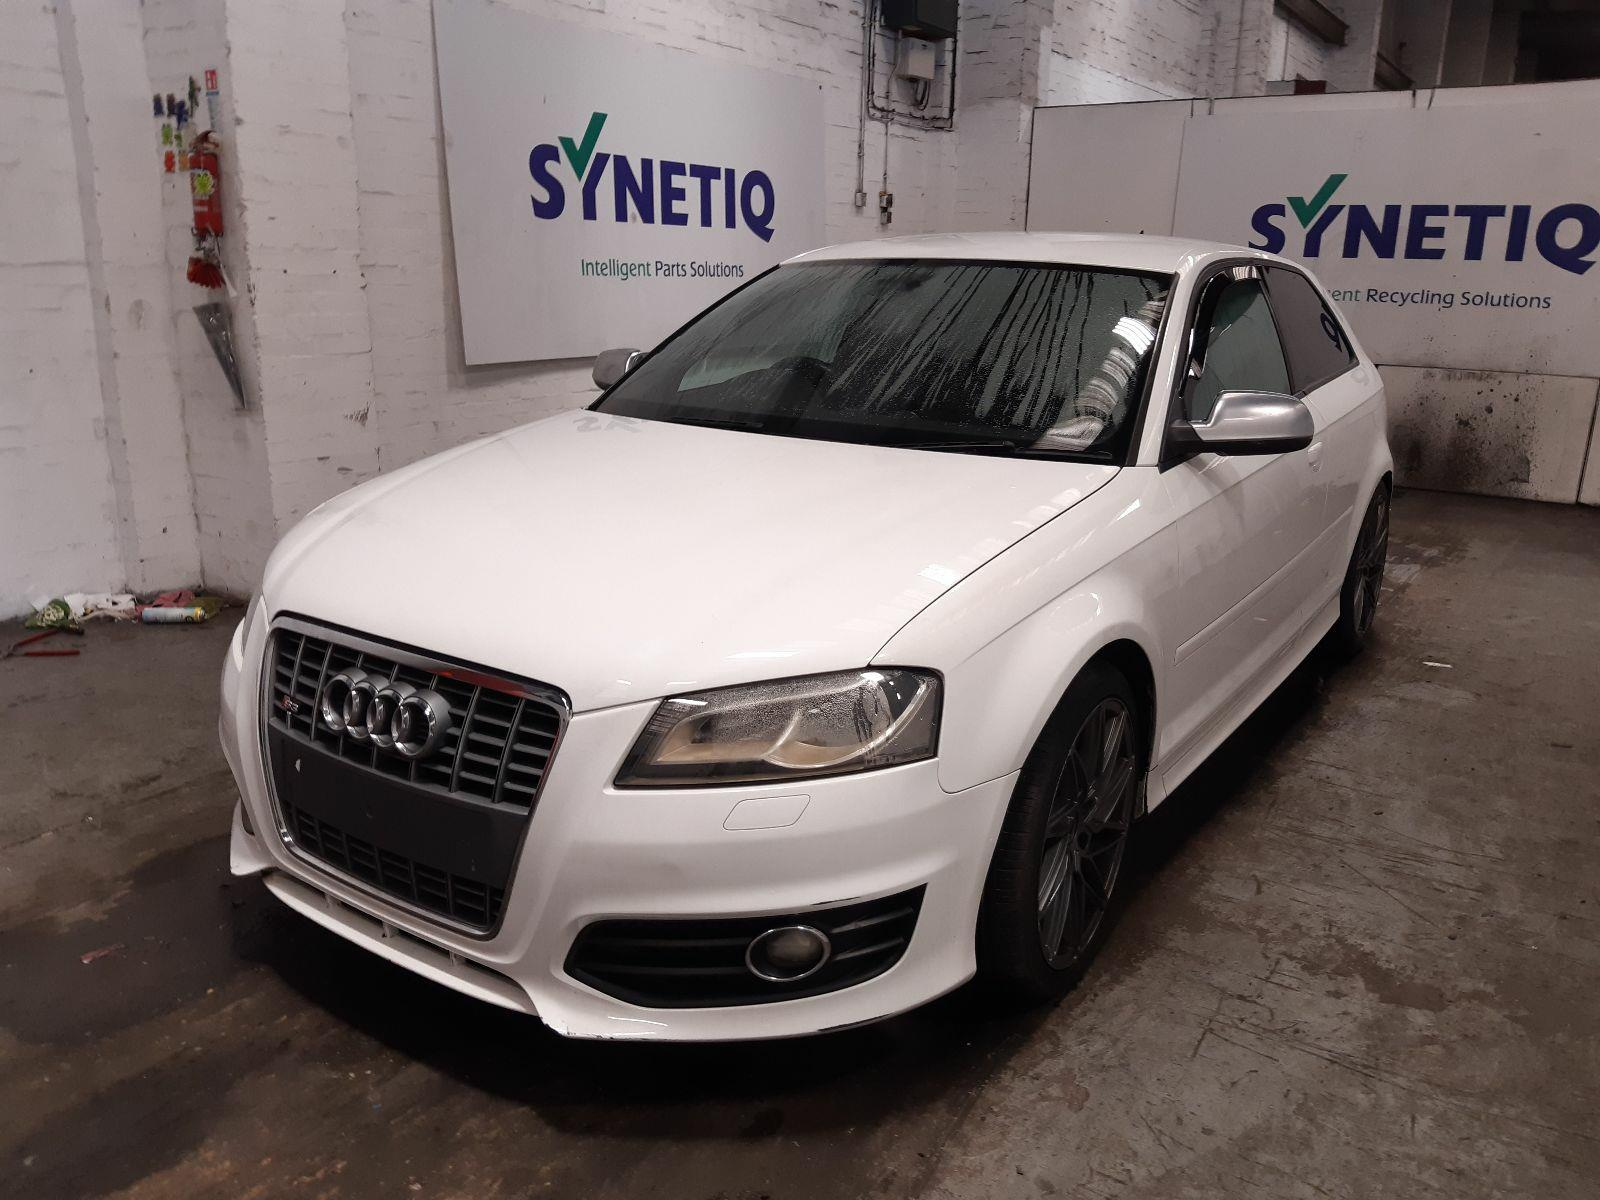 Synetiq 2011 Audi A3 Mk2 8p A5 2003 To 2013 S3 Tfsi Quattro 3 Door Hatchback Petrol Manual Breaking For Used And Spare Parts